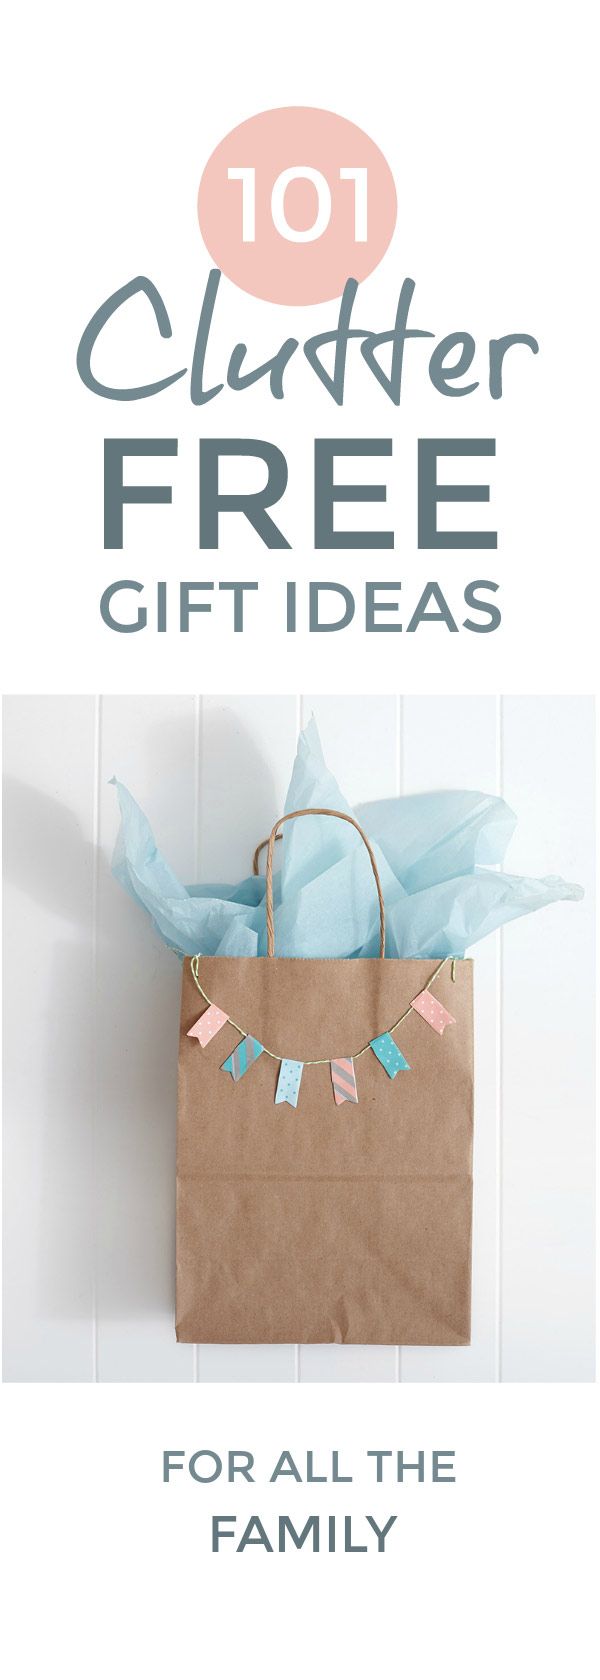 A big 2018 guide to unique clutter free christmas gift ideas for kids, men and women. Including awesome natural, eco friendly, sustainable & zero waste christmas gift ideas and simple DIY minimalist gifts & stocking stuffers. Plus cheap, money saving experience gifts if you're on a budget. For everyone from toddlers to teens, husbands and wives, grandparents and teachers. #christmasgifts #clutterfree #noclutter #ecofriendly #giftideas #giftlist #minimalist #moneysaving #presents